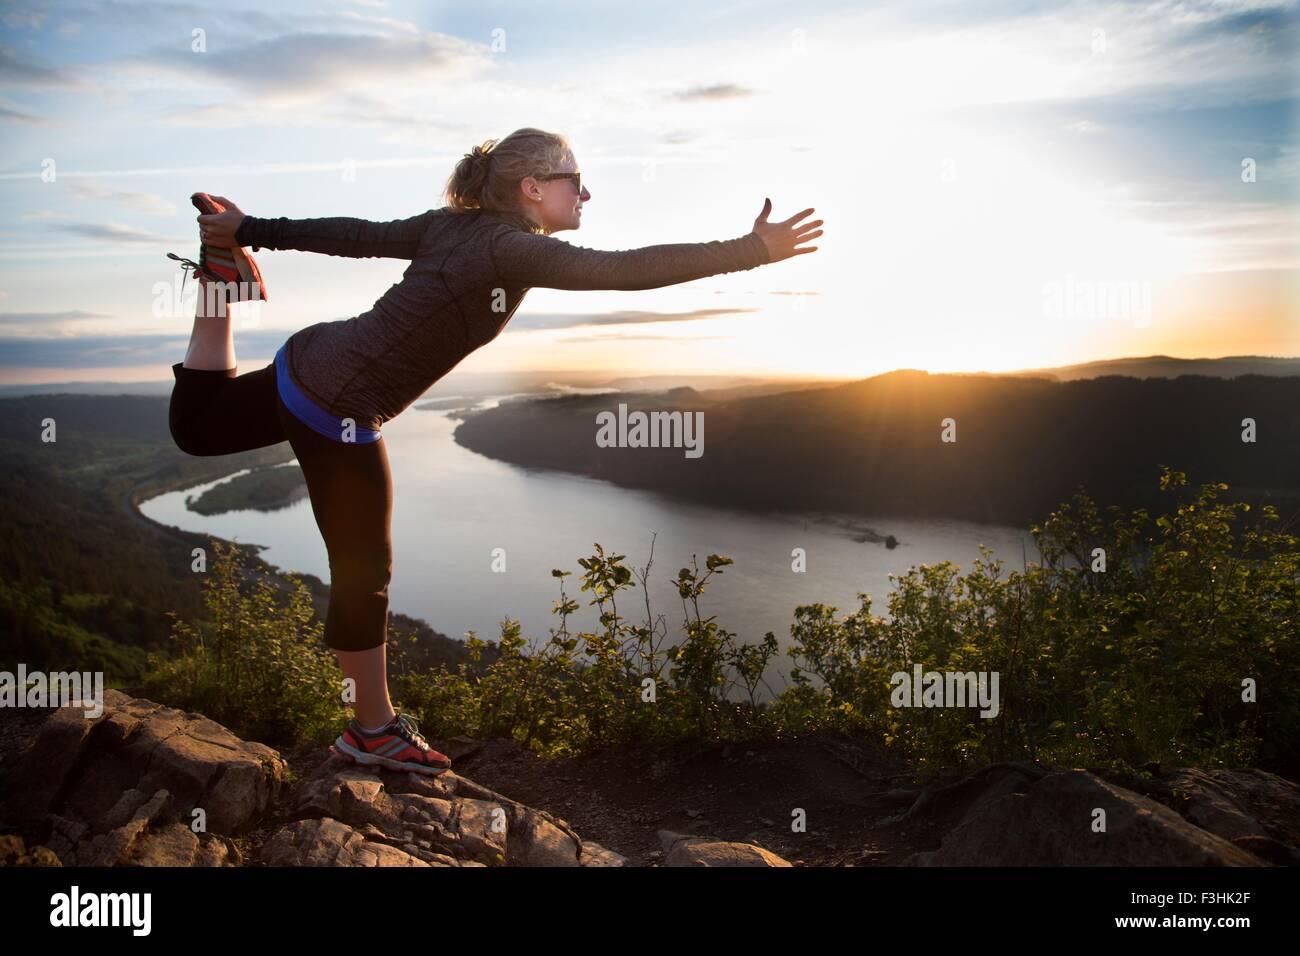 Woman practising yoga on hill, Angel's Rest, Columbia River Gorge, Oregon, USA - Stock Image